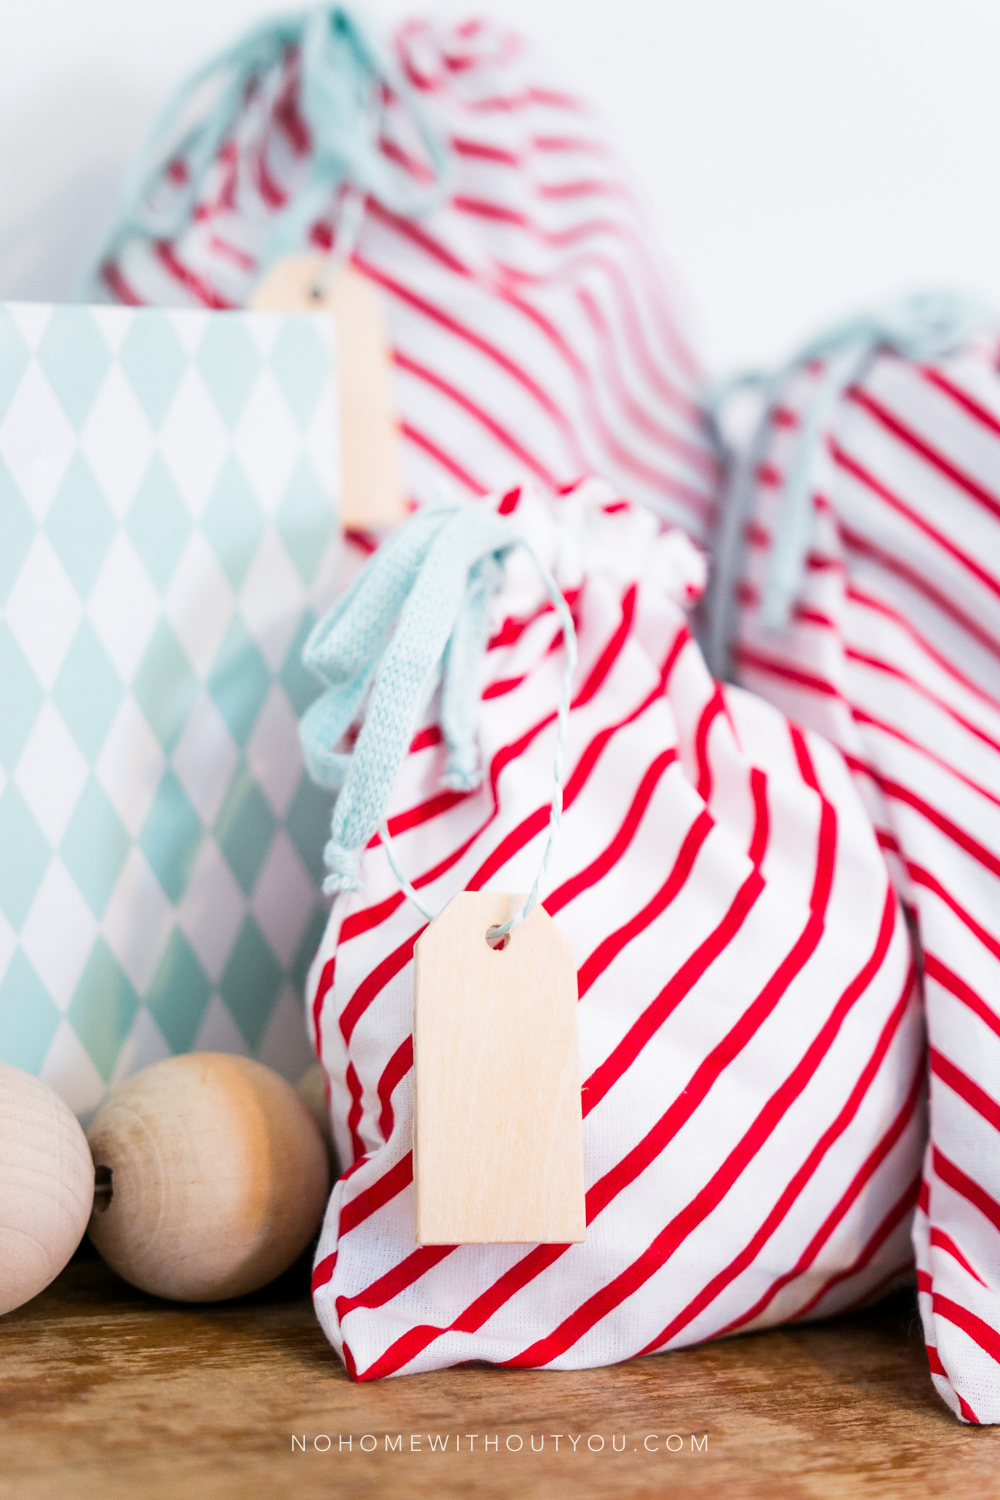 Gift wrapping bags - DIY - No Home Without You blog (3 of 5)